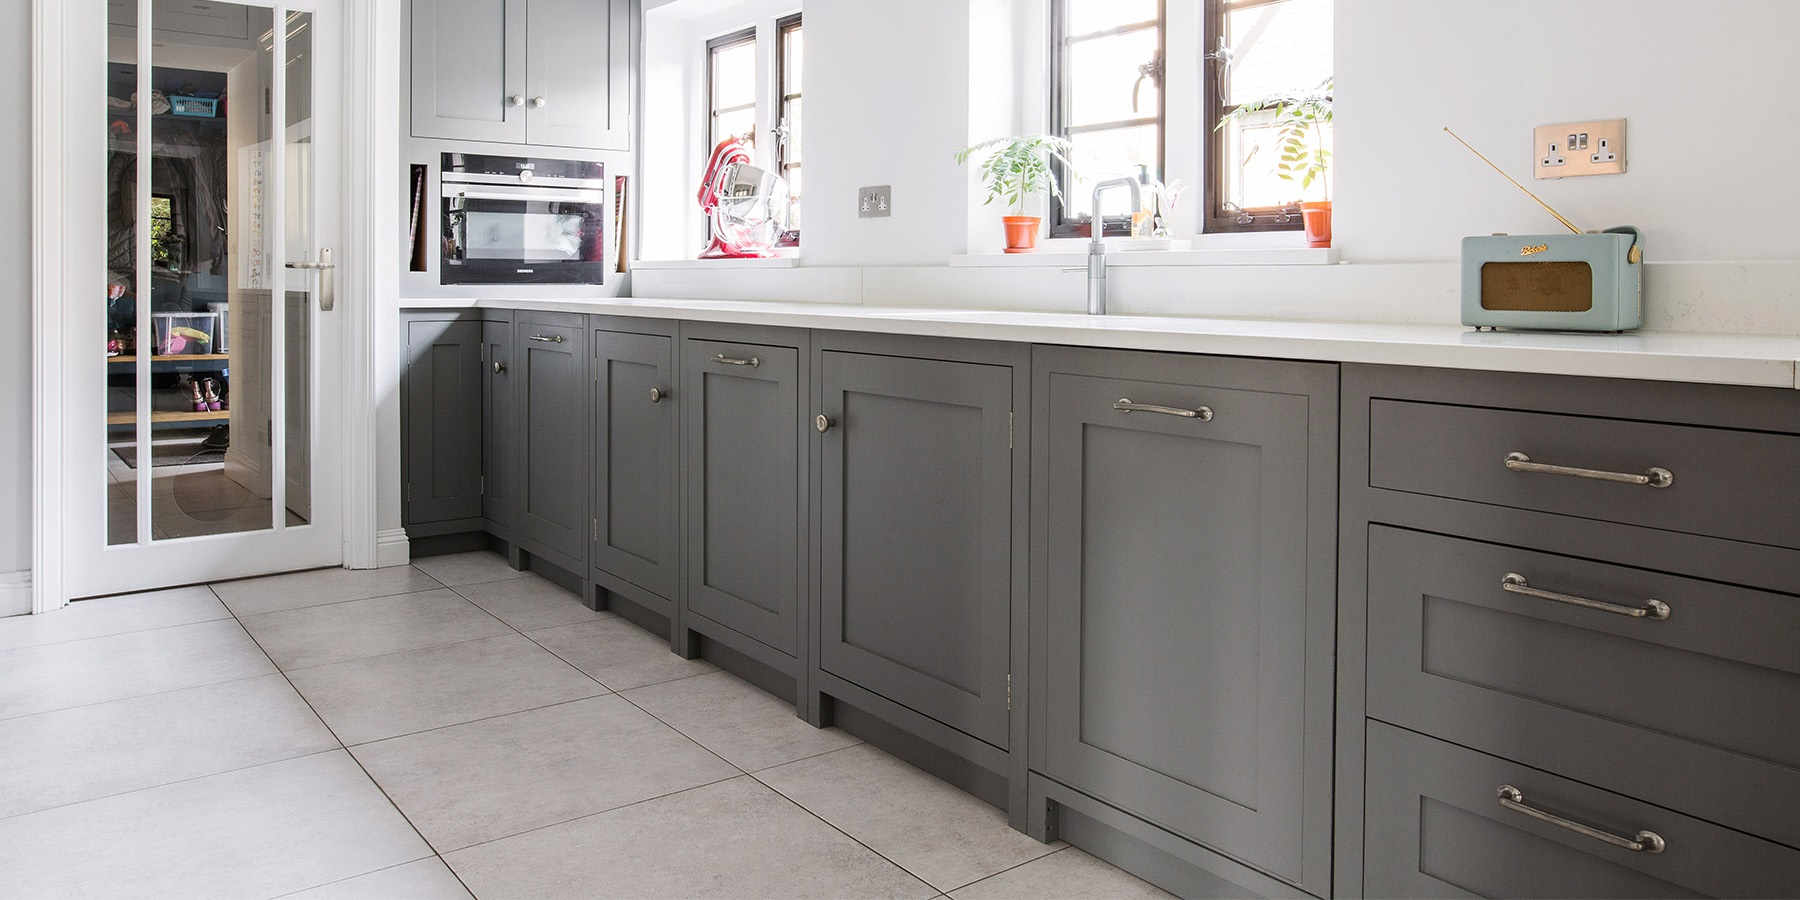 Classic Handmade Galley Kitchen - Burlanes Hoyden galley kitchen in grey with white worktops and silver handles.